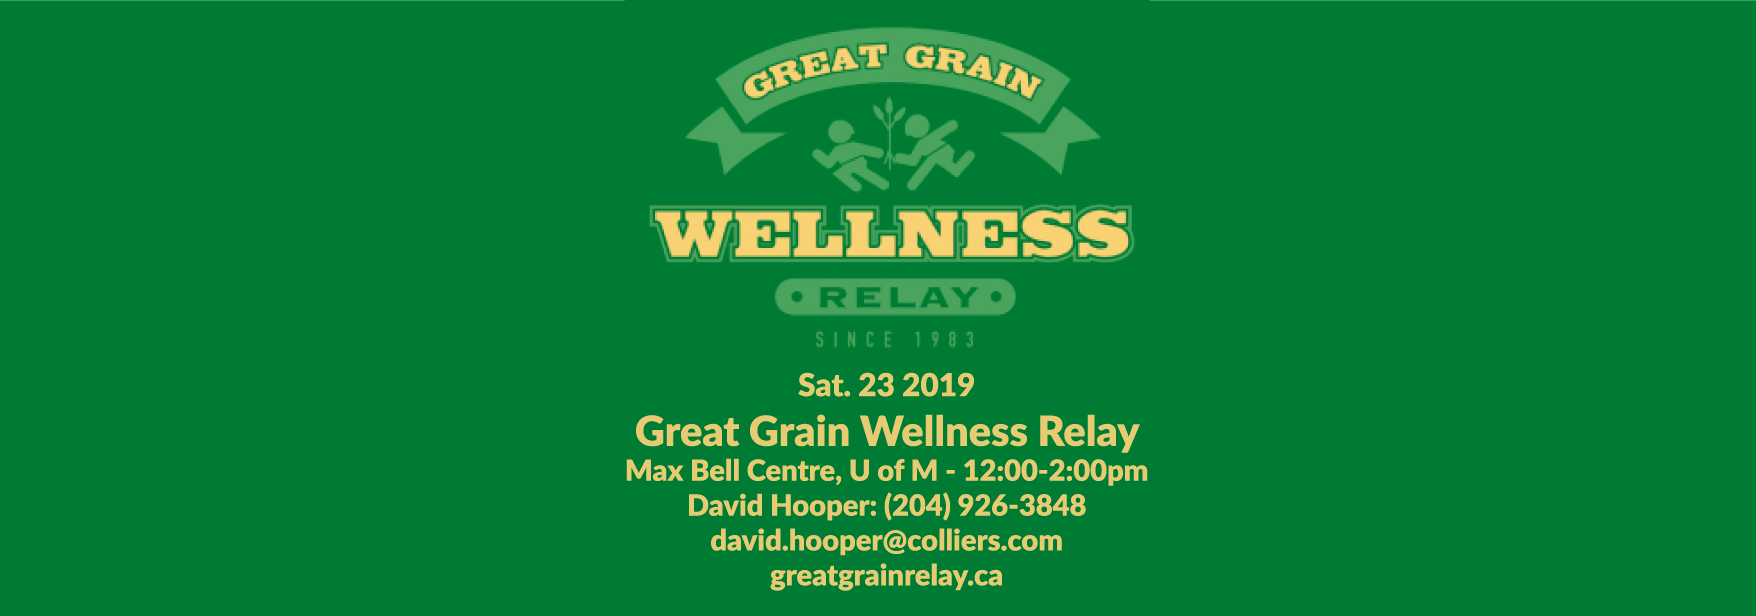 Great Grain Wellness Relay